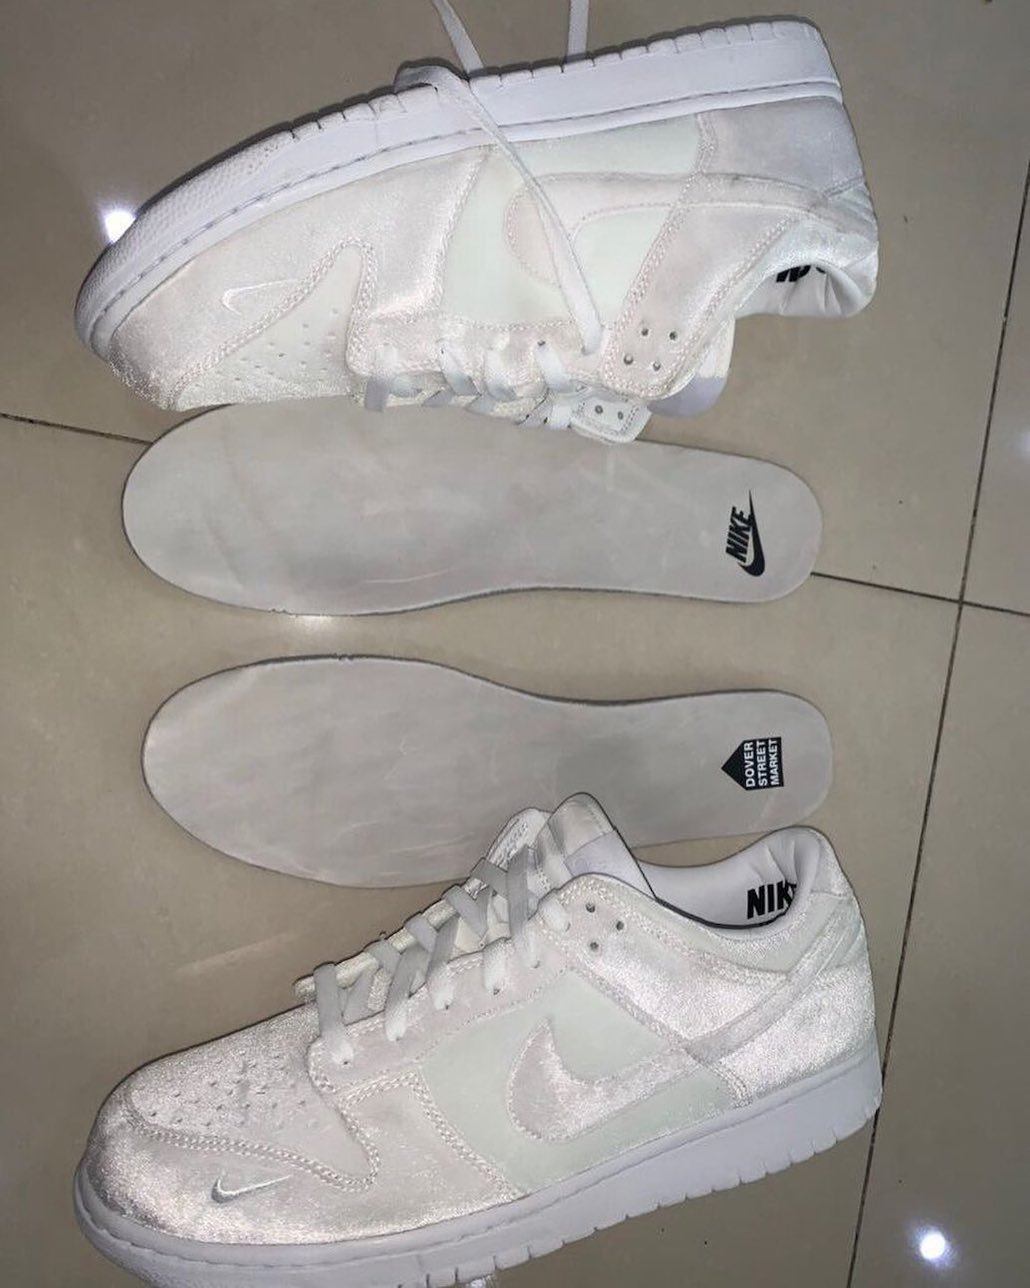 Dover Street Market Nike Dunk Low White DH2686-100 Release Date Info